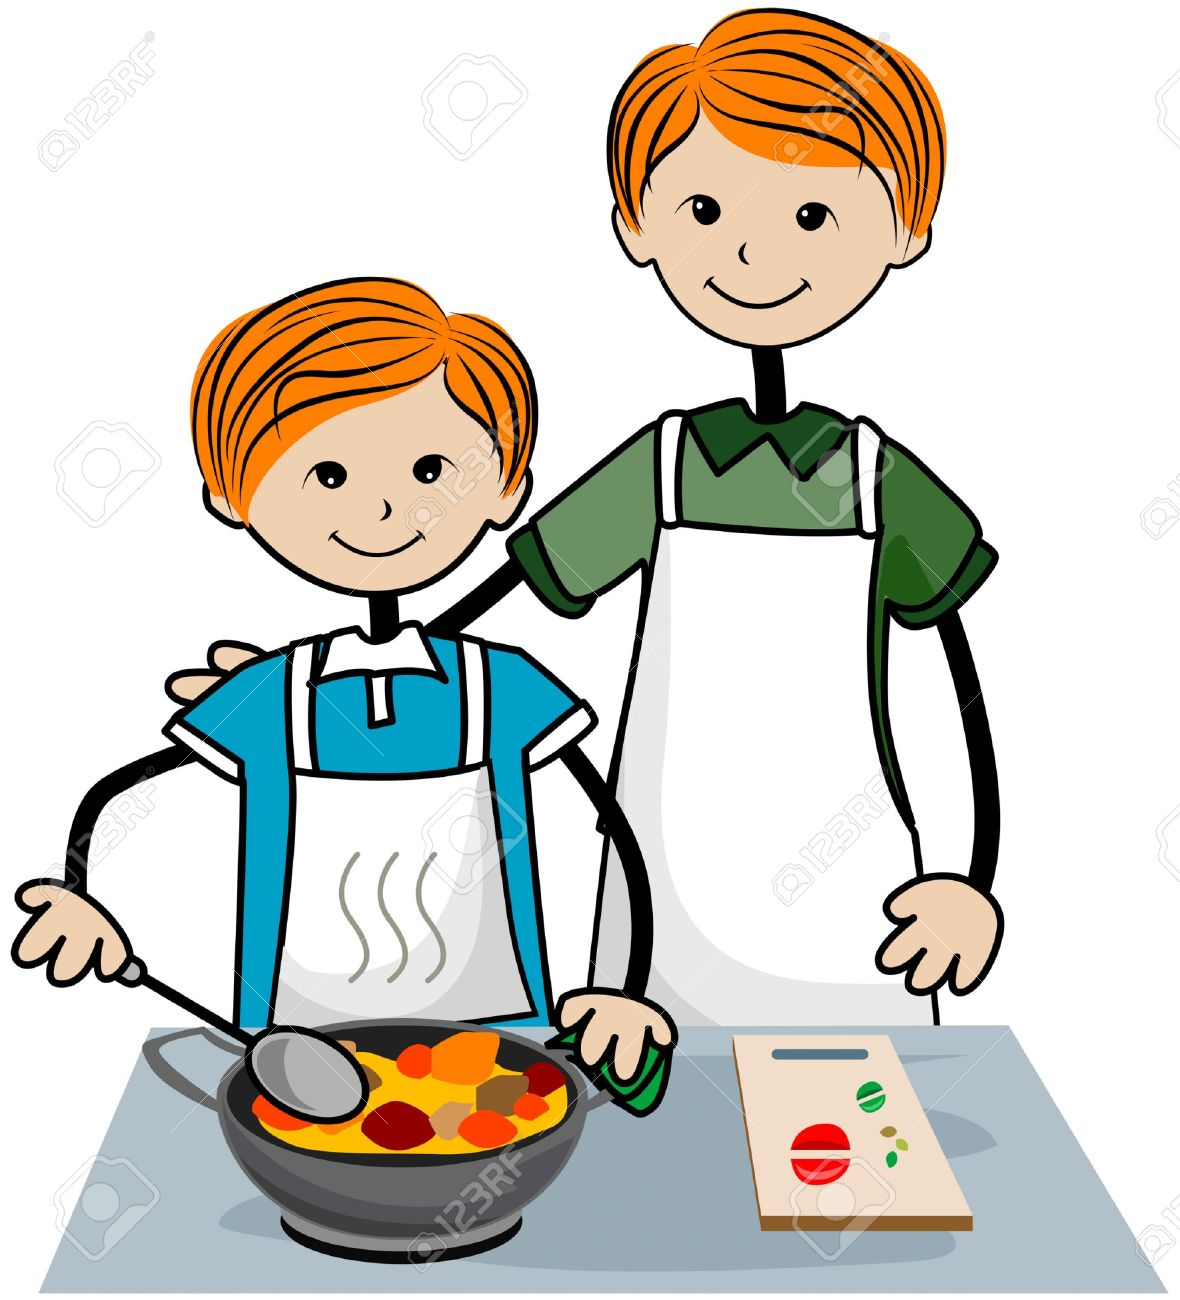 Cooking Kitchen Clip Art: Free Download Best Cook Clipart Free